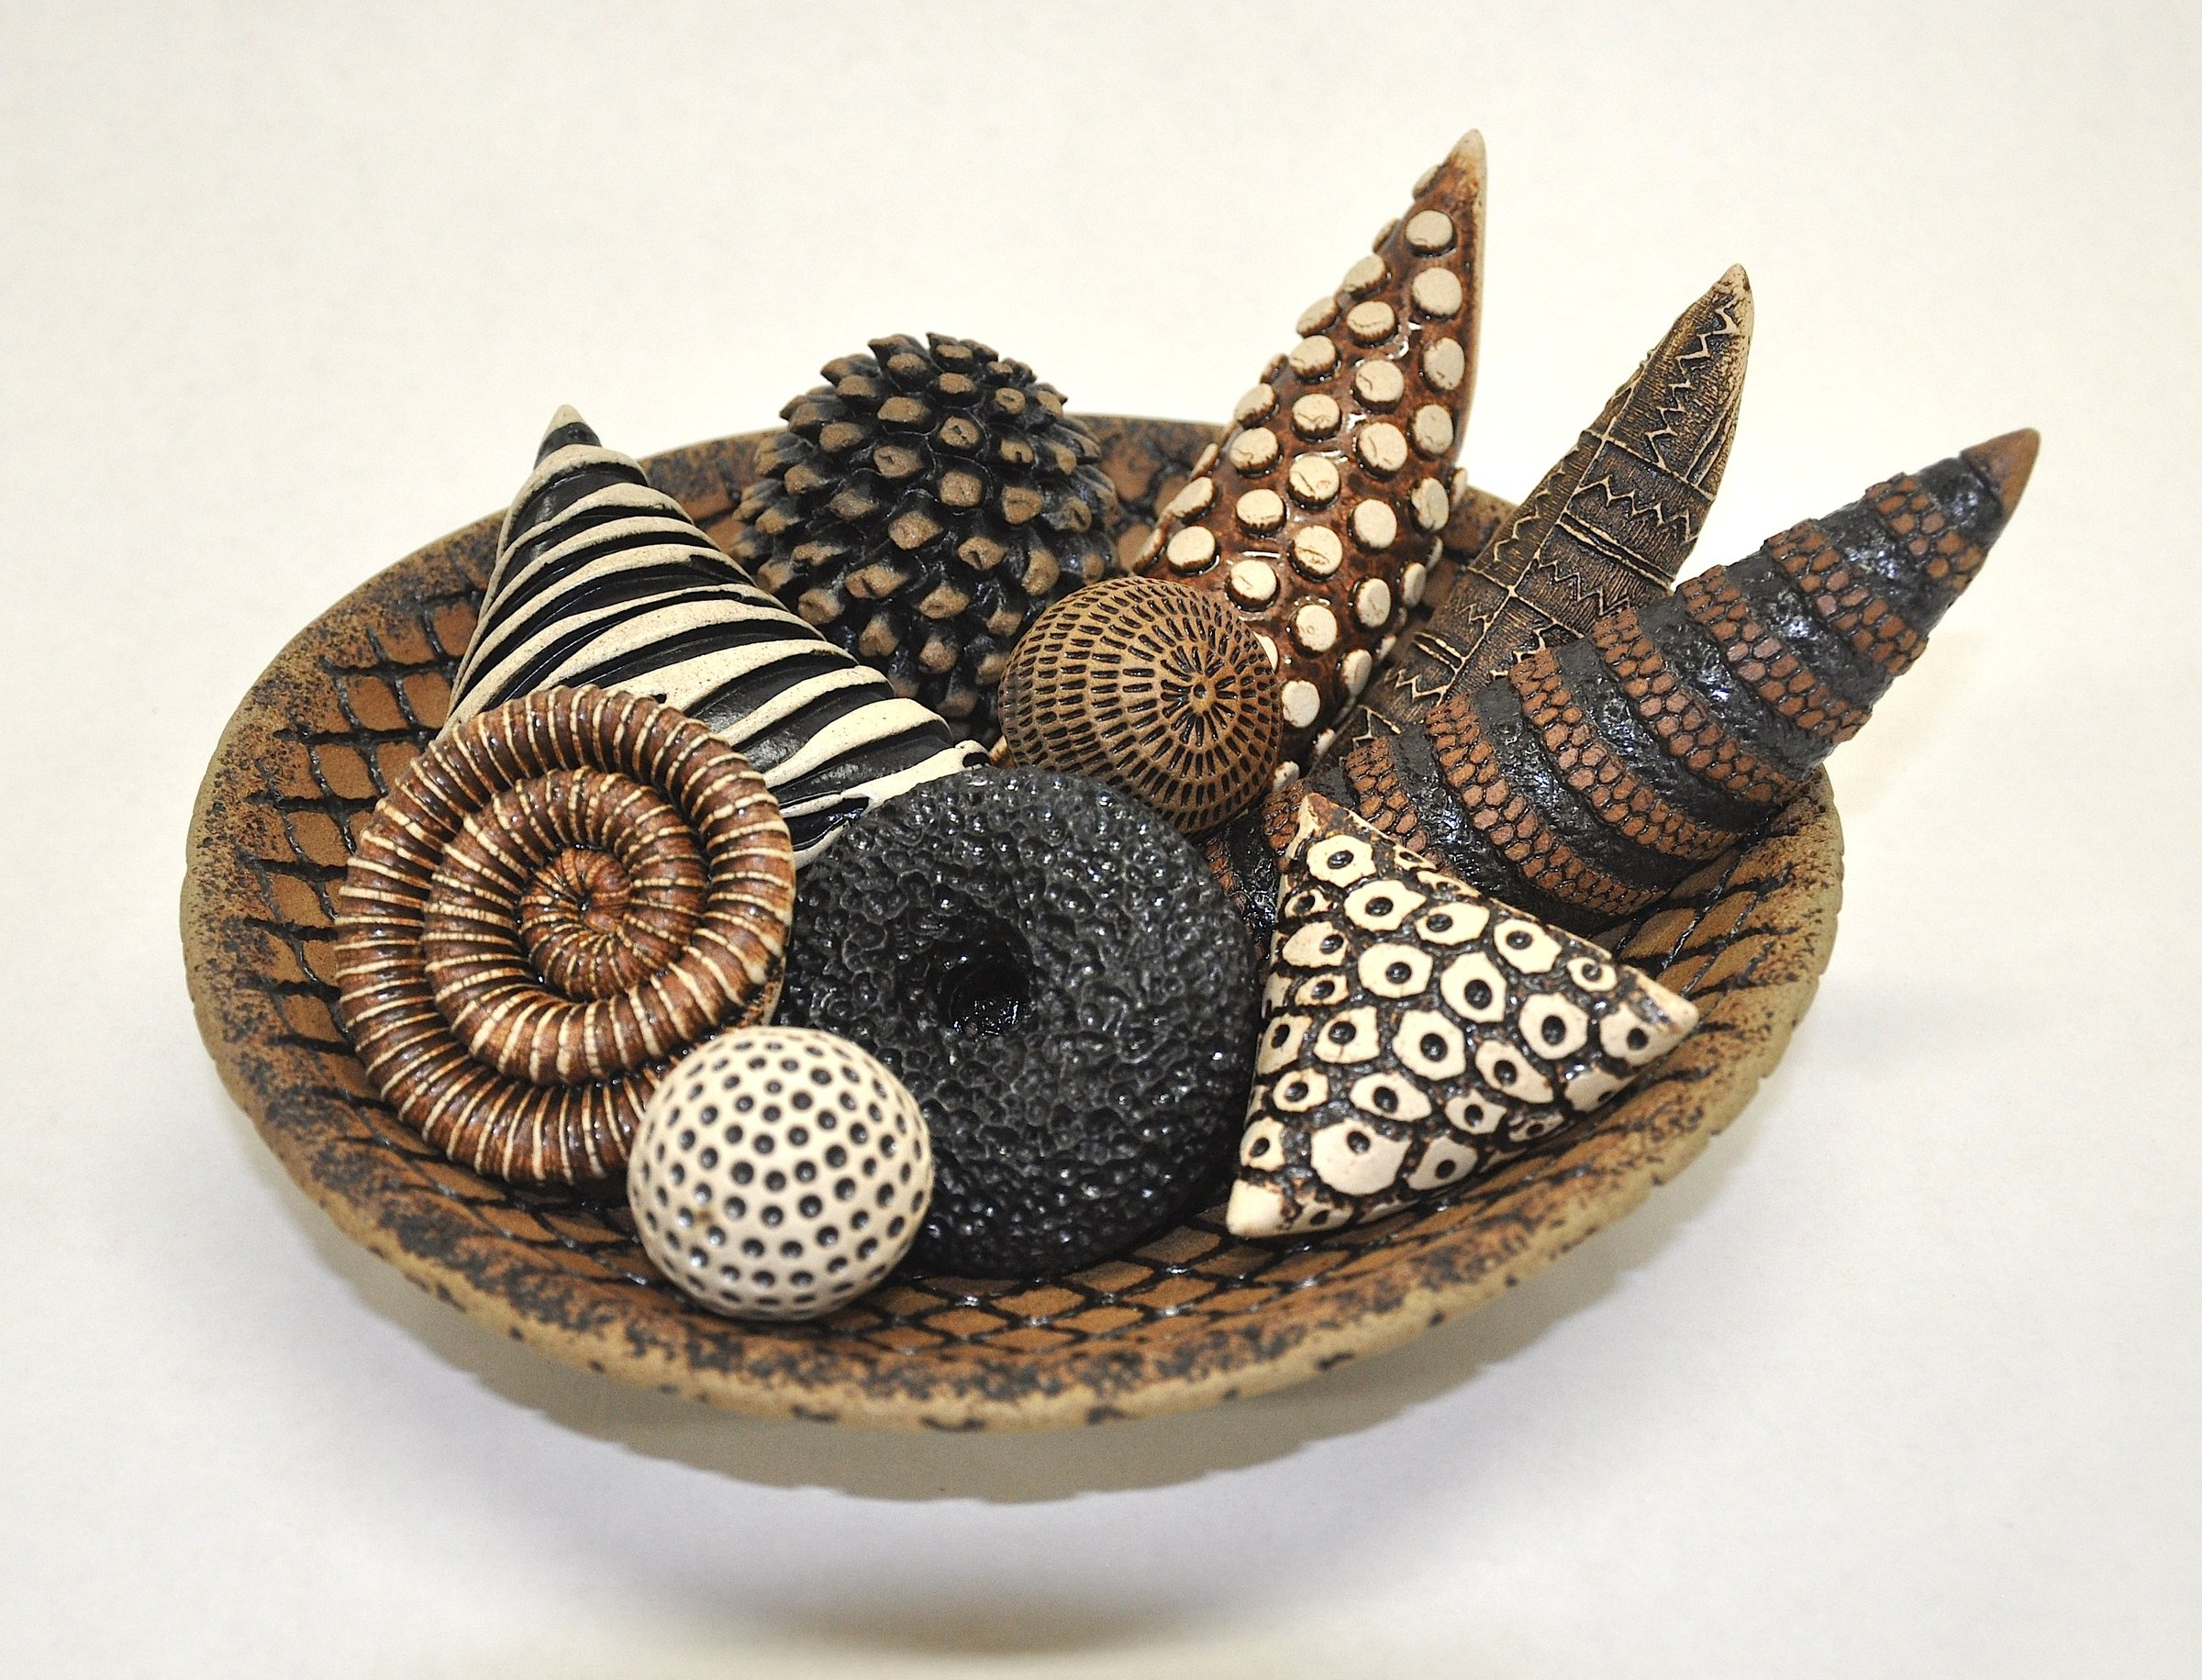 Bowls And Rattles Ii By Kelly Jean Ohl Ceramic Sculpture